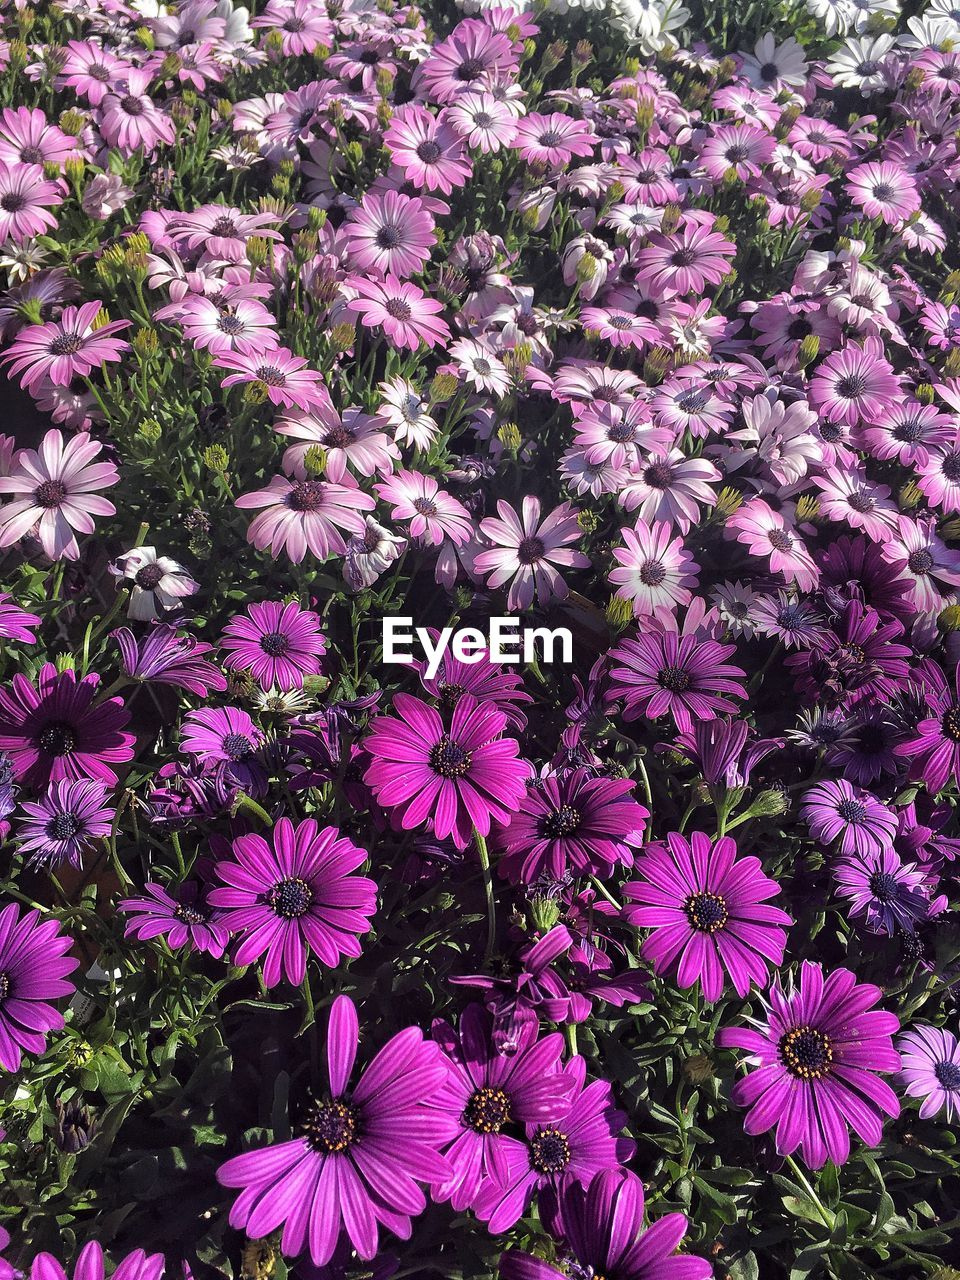 flower, purple, fragility, growth, petal, beauty in nature, nature, high angle view, no people, freshness, plant, blooming, day, flower head, outdoors, osteospermum, backgrounds, eastern purple coneflower, close-up